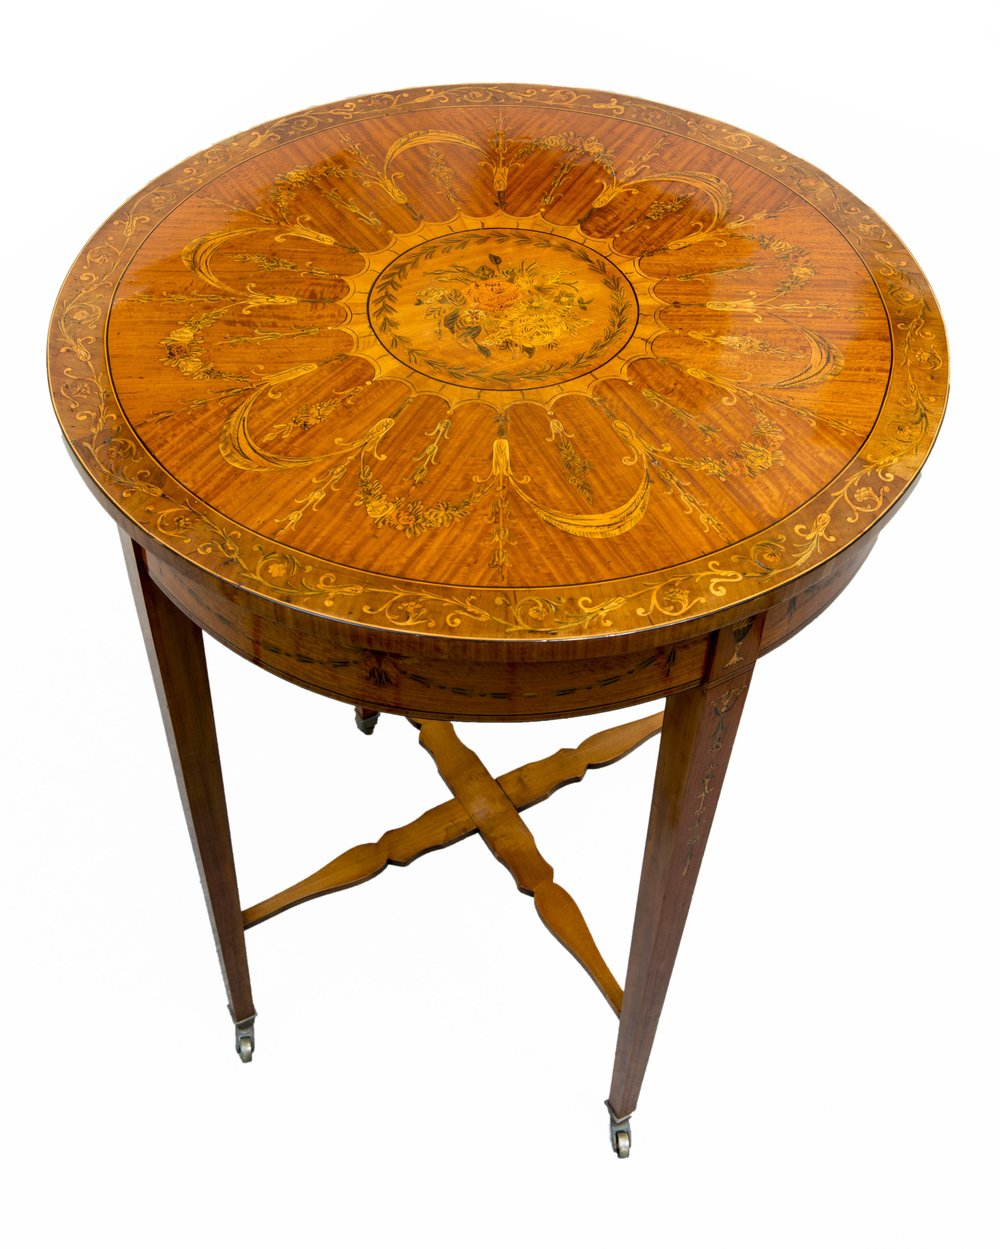 15 Wilsons inlaid table.jpg